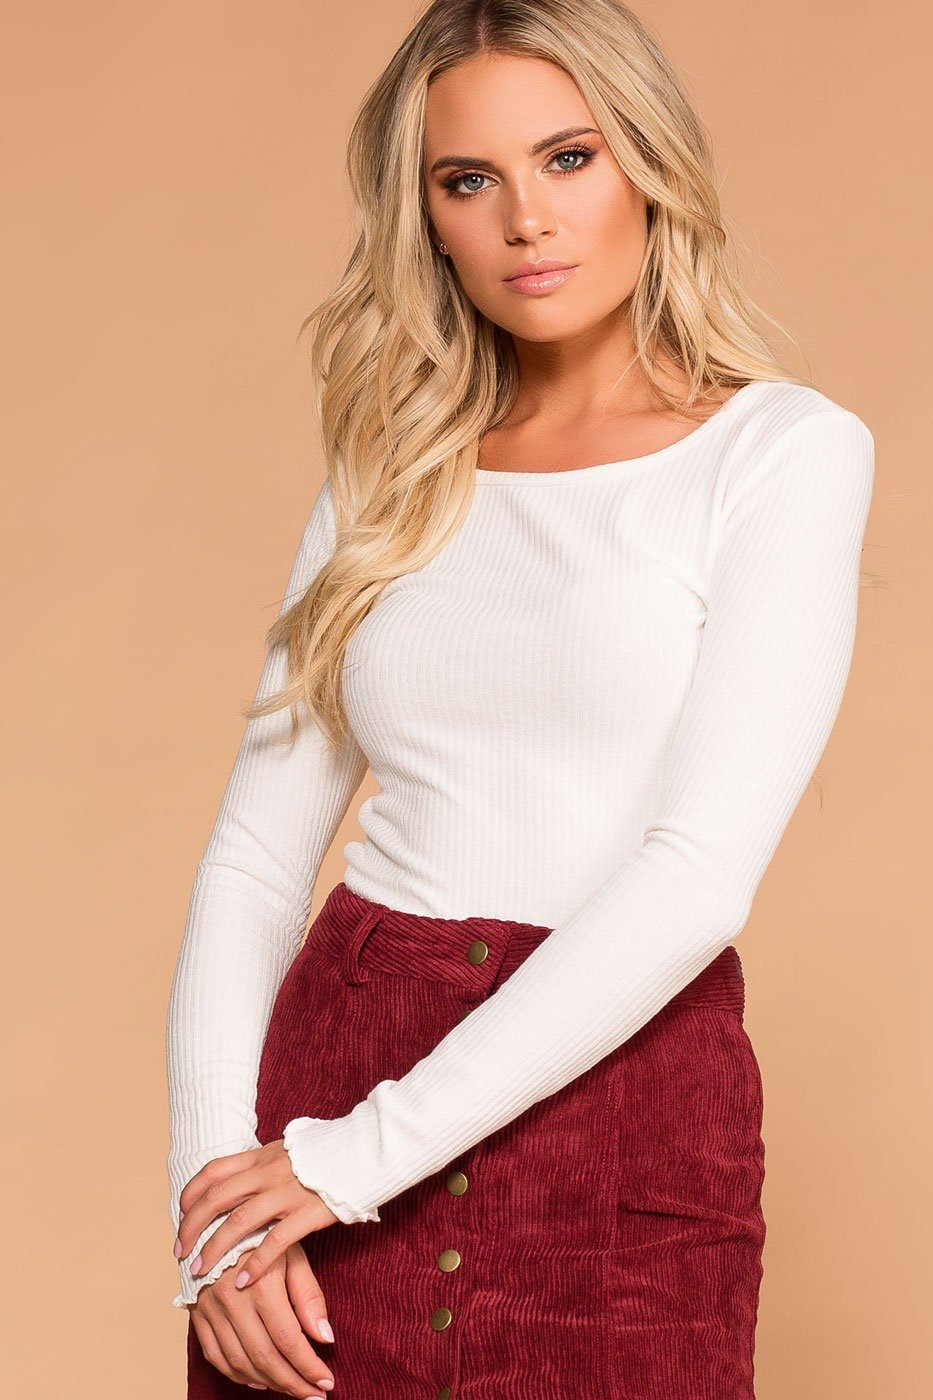 f54d95037055dd Afternoon Breeze White Long Sleeve Crop Top